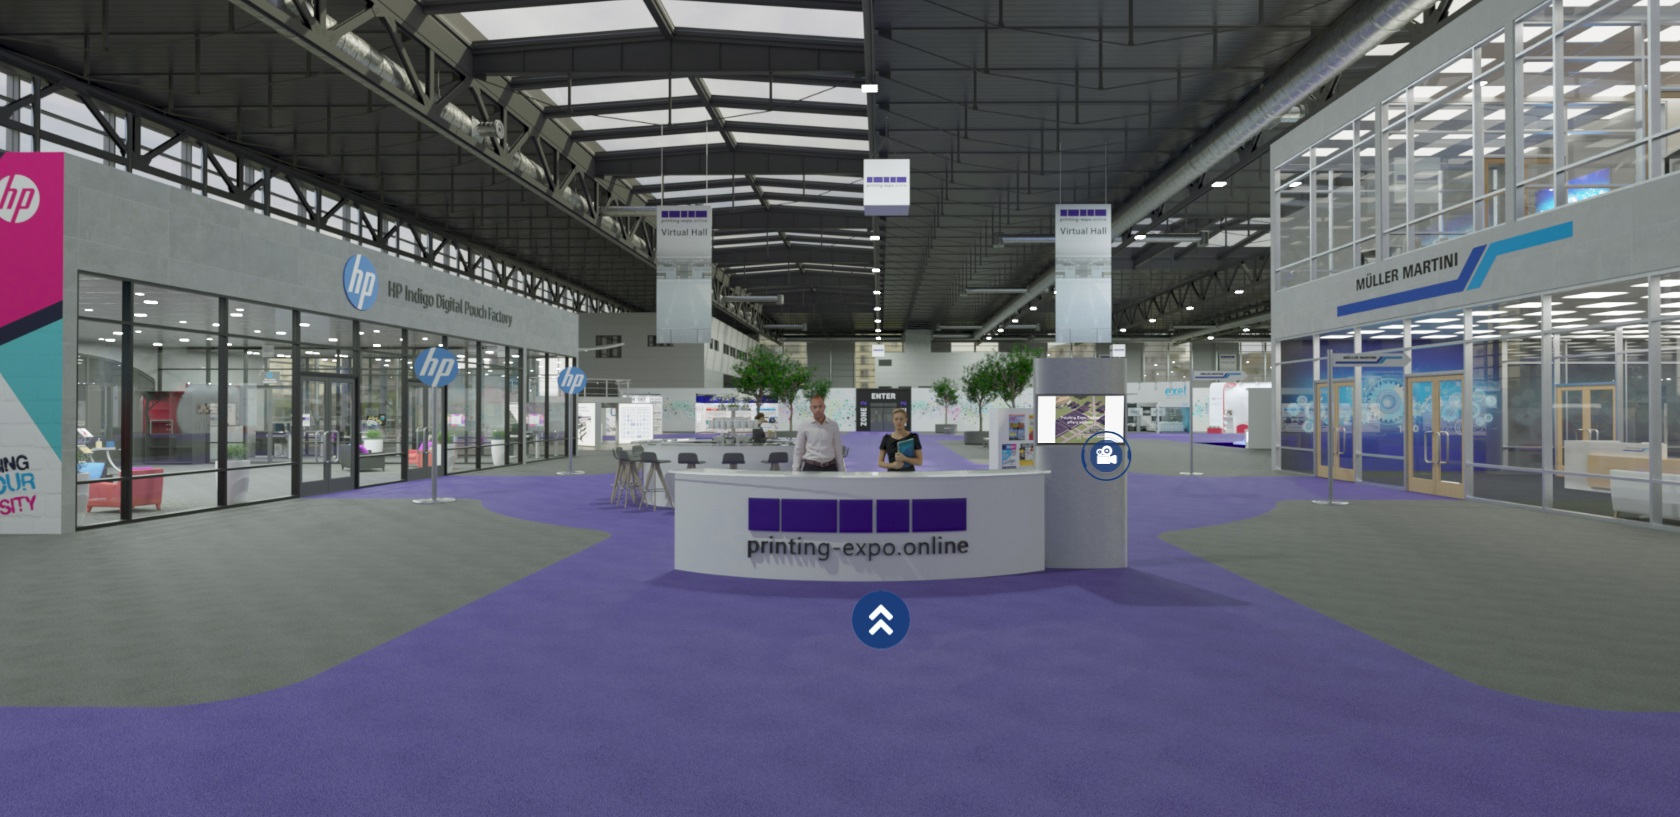 Printing Expo Virtual Exhibition to be Available Online for 365 Days